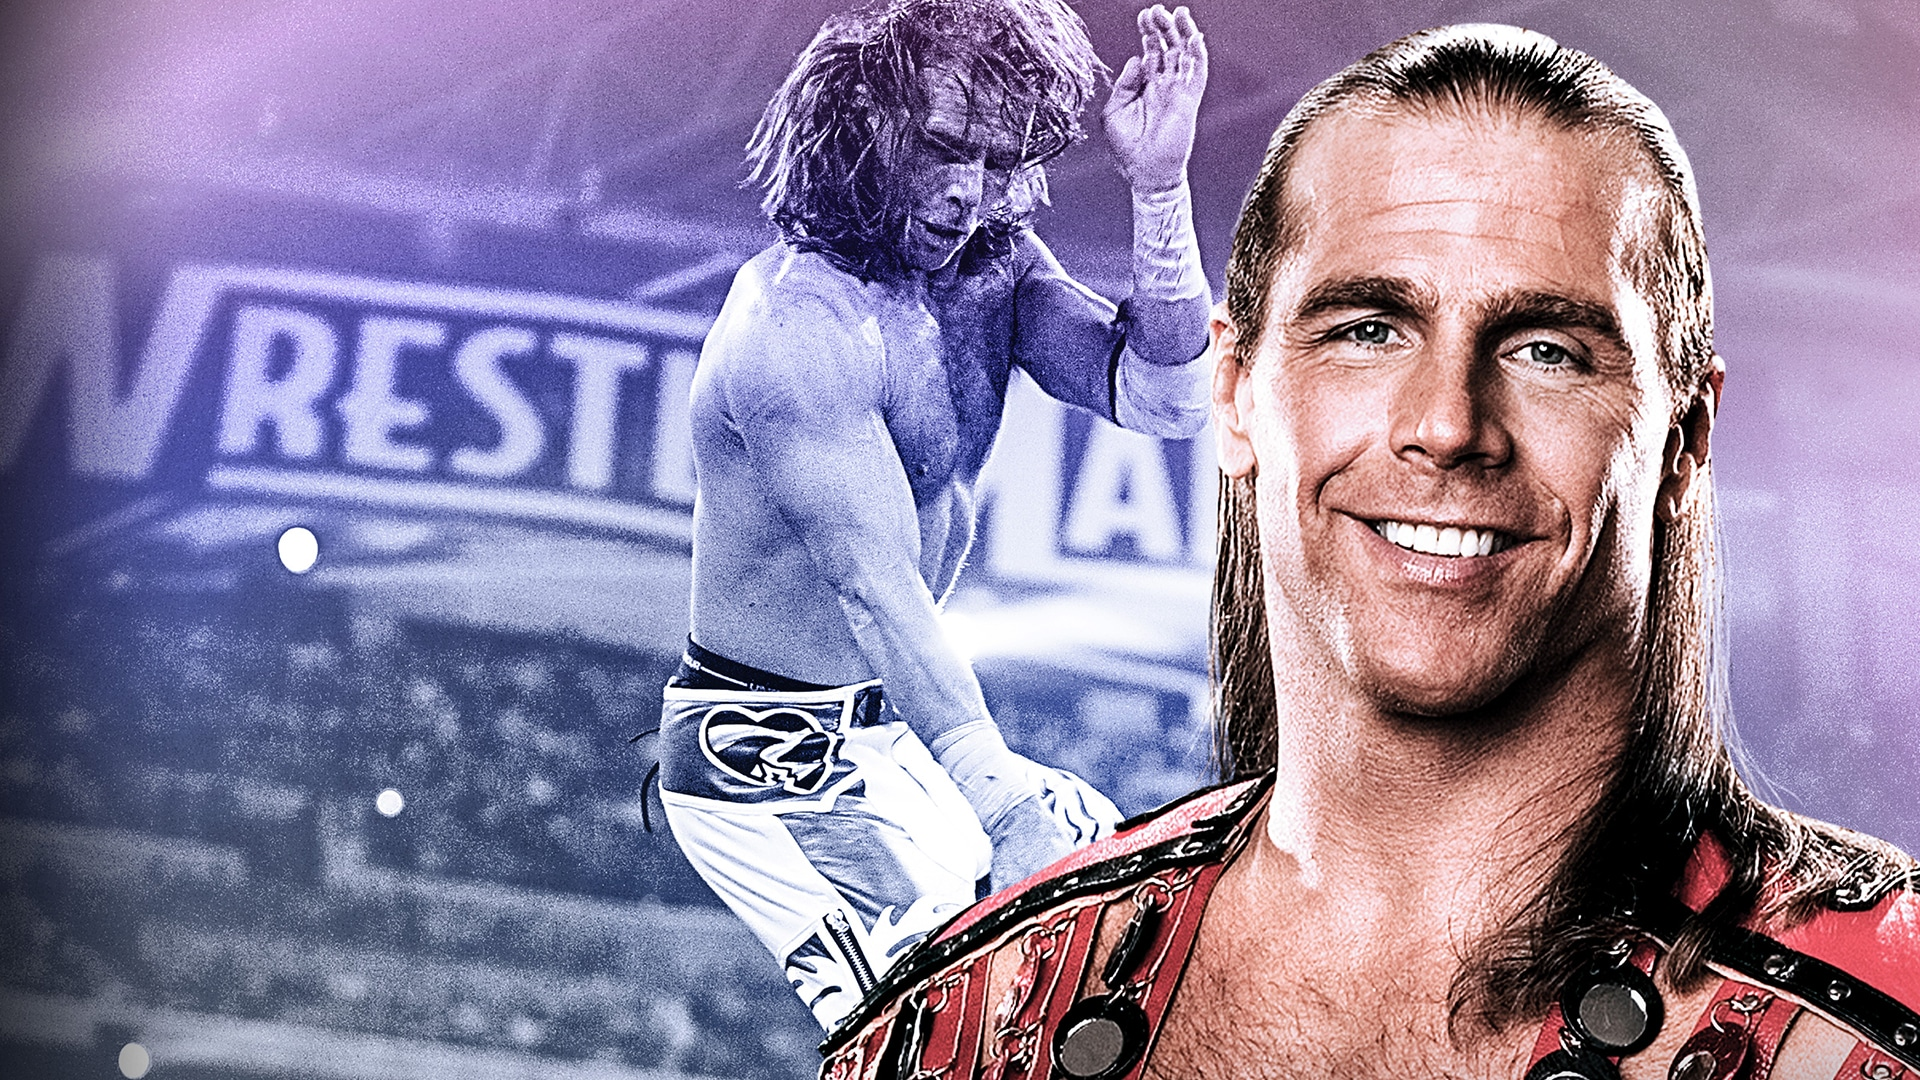 Shawn Michaels' Best WrestleMania Matches